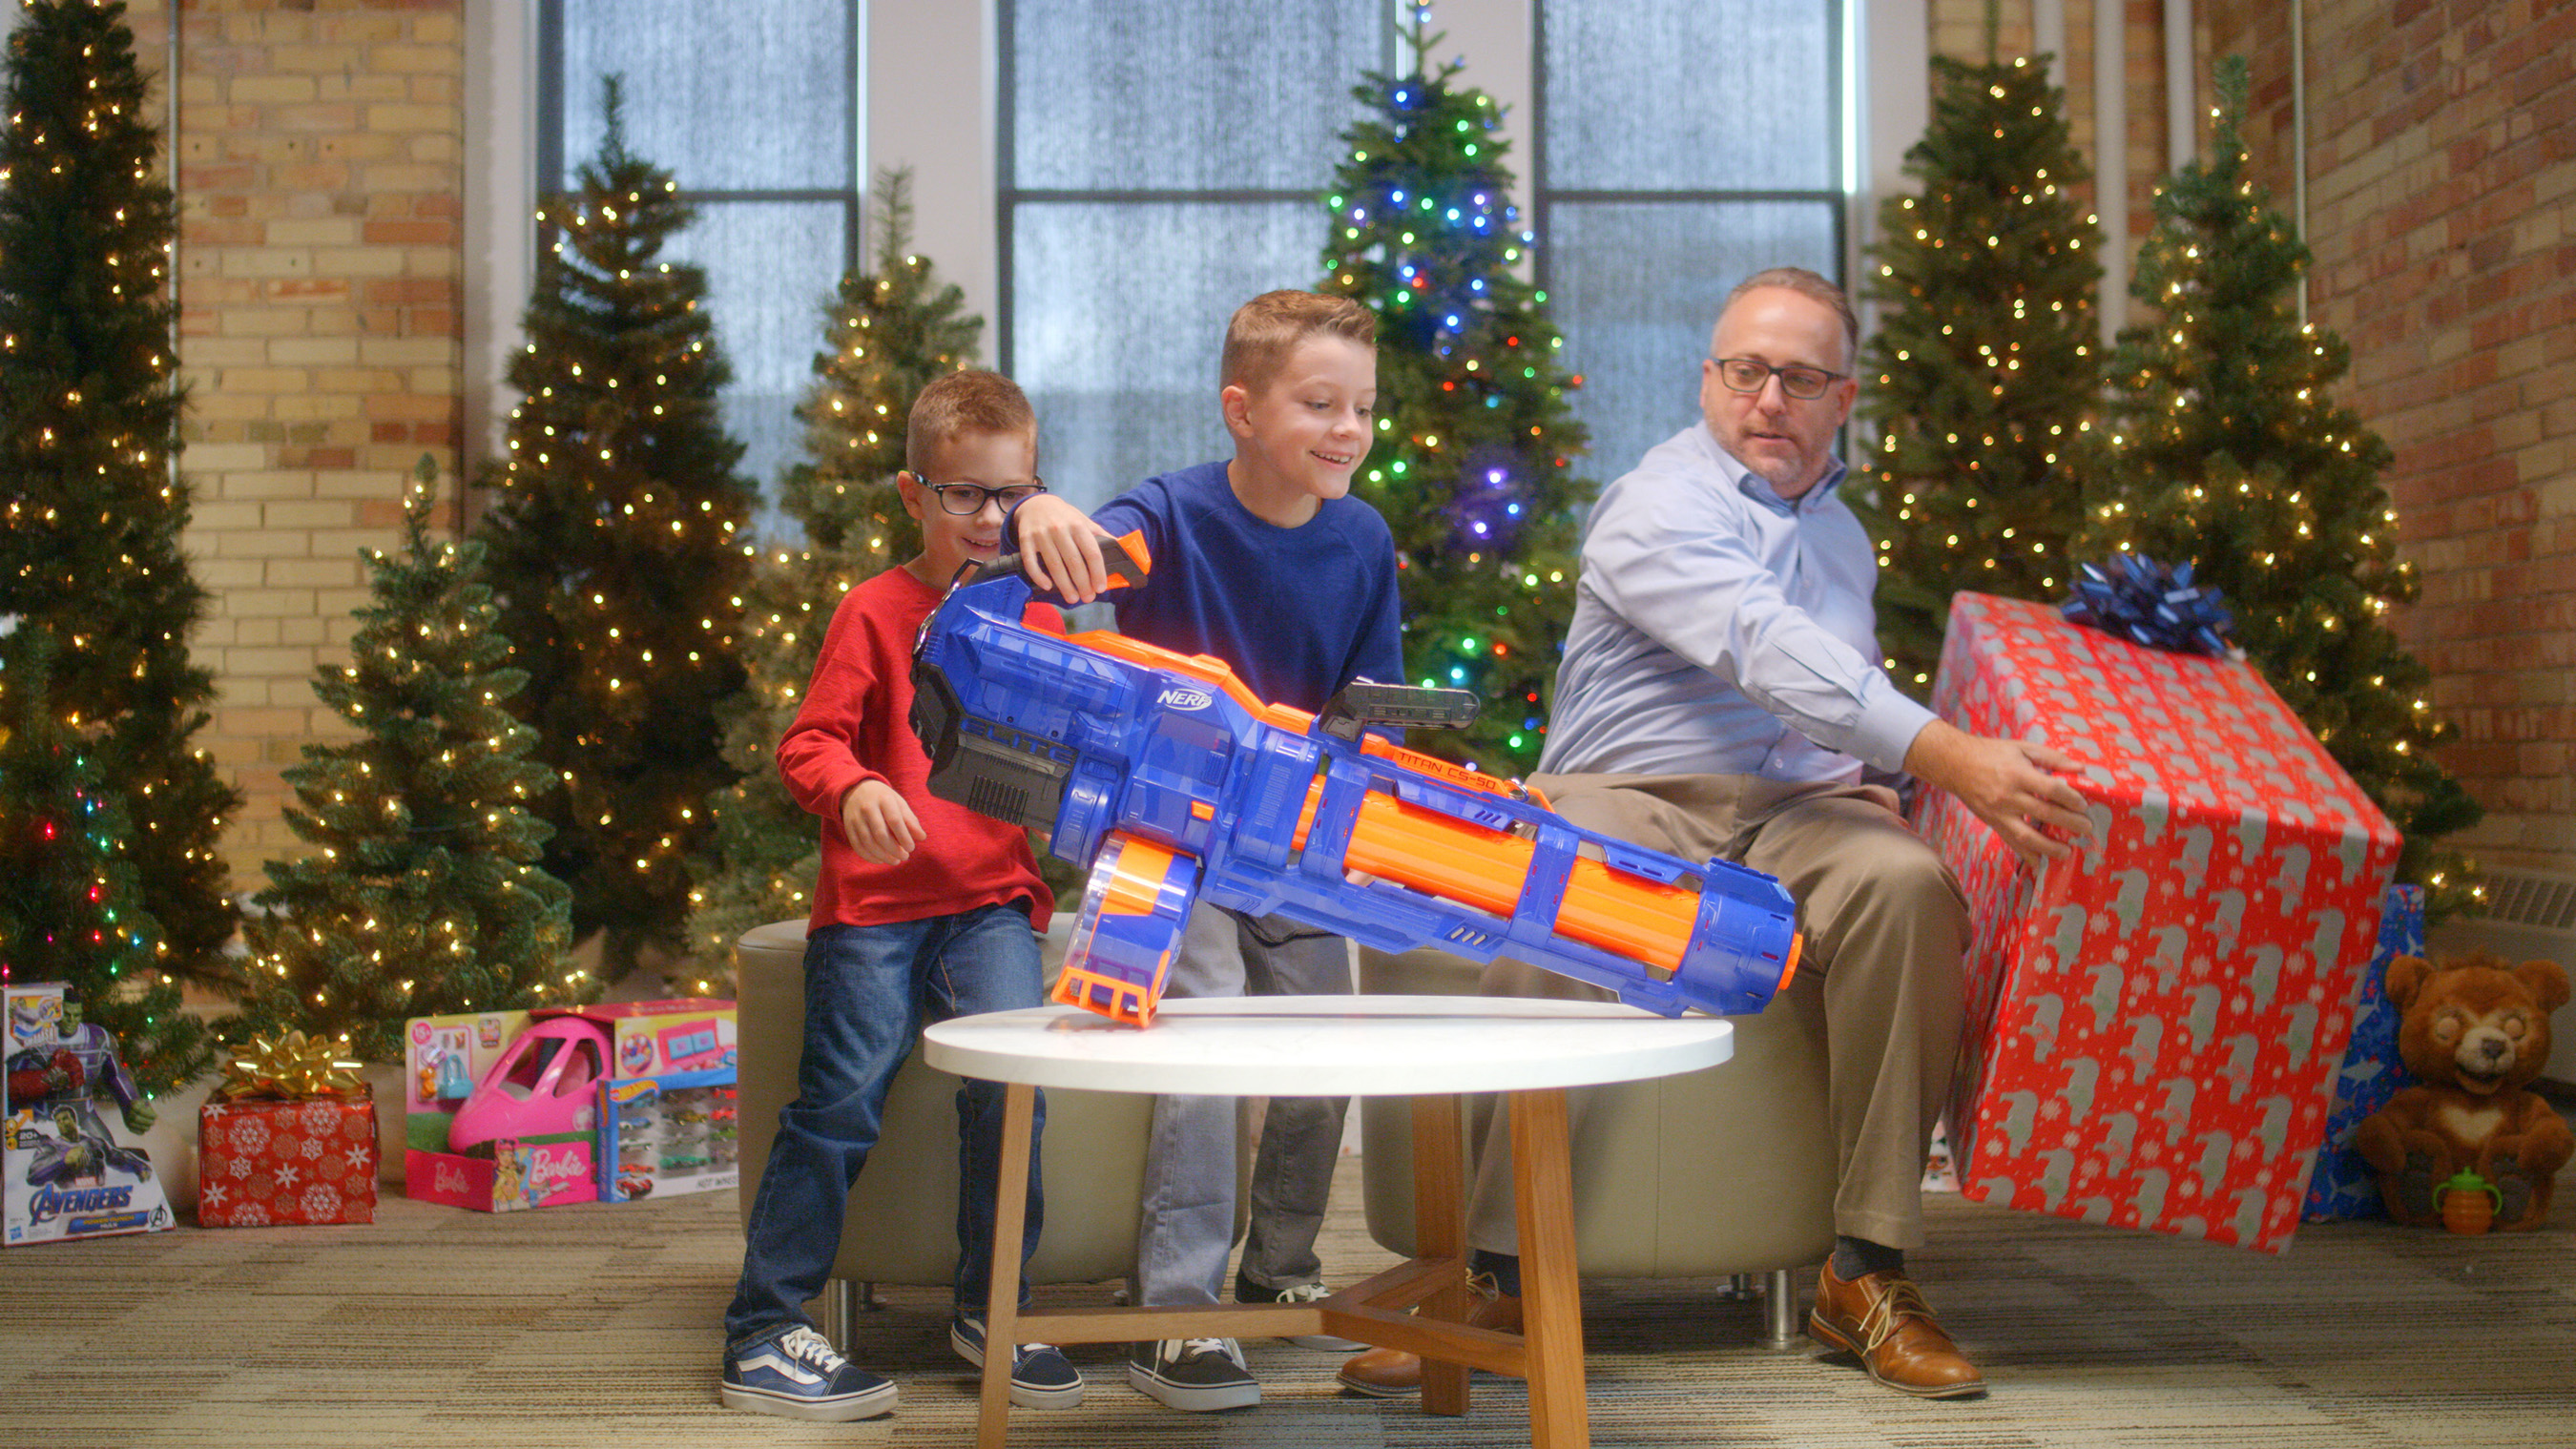 Top Toy picks are brought to you by our toy experts. Carefully selected, and sure to bring smiles to all of us this holiday season.